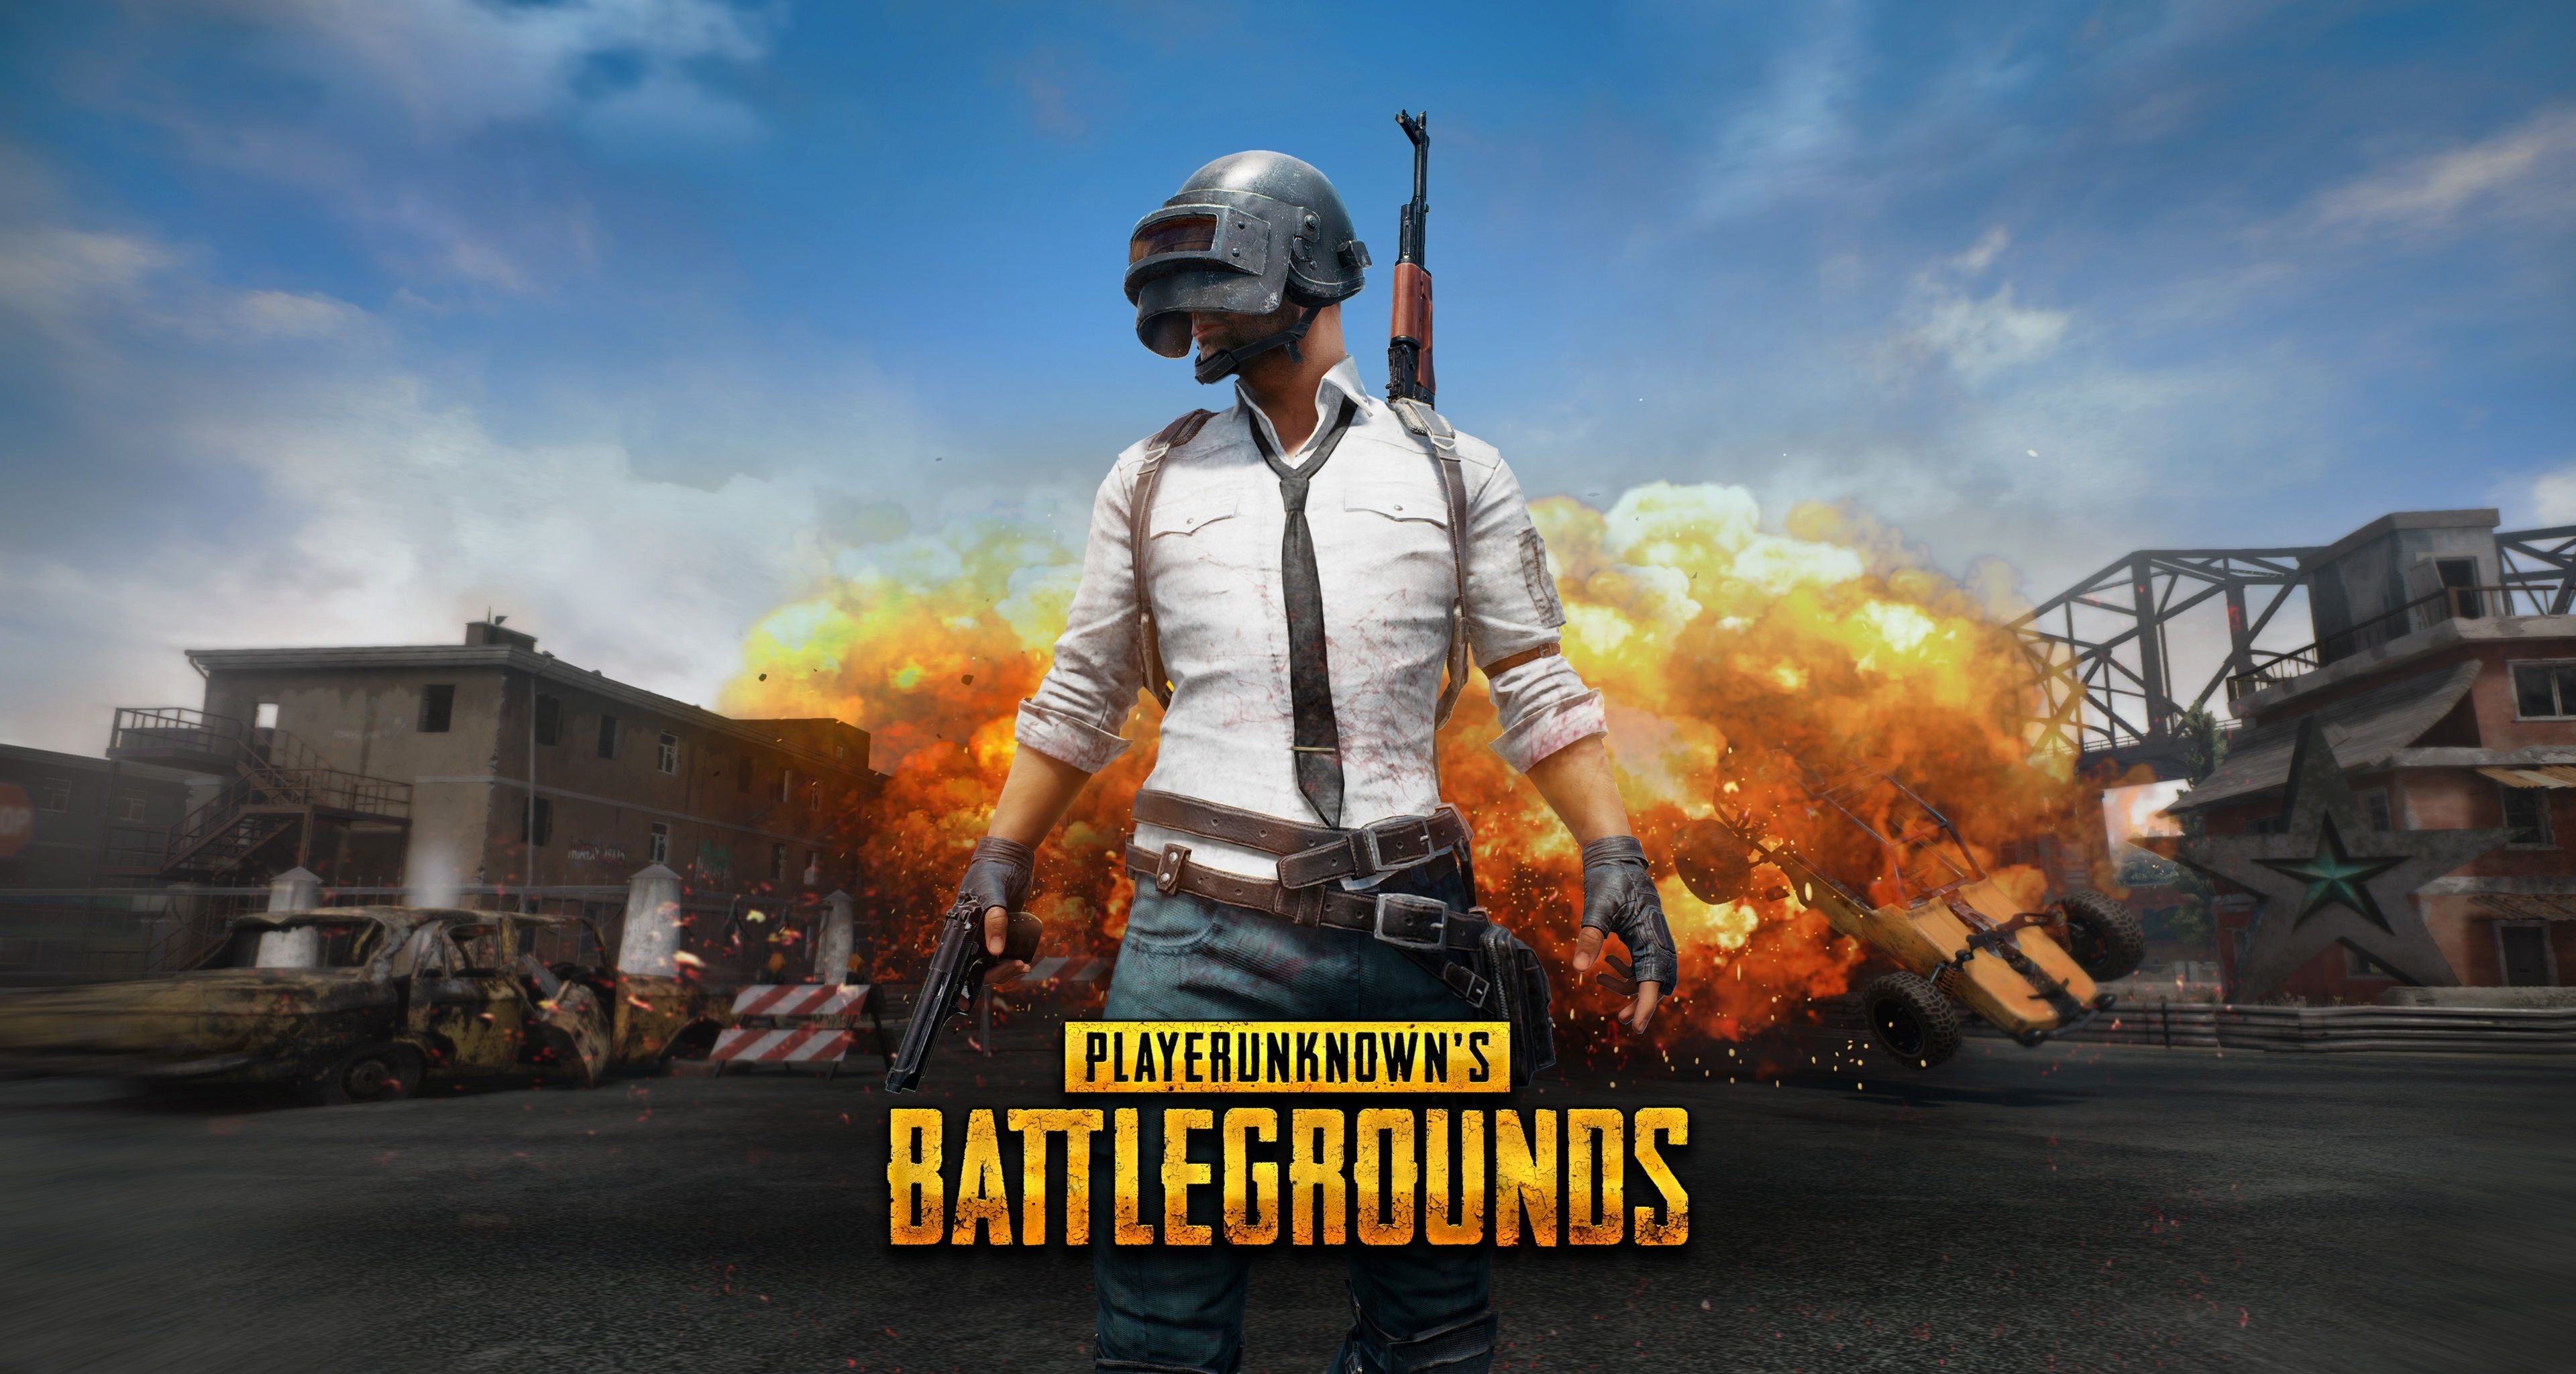 Pubg Full Hd Wallpaper Download For Pc: 3840x2048 Playerunknowns Battlegrounds 4k Pc Wallpaper